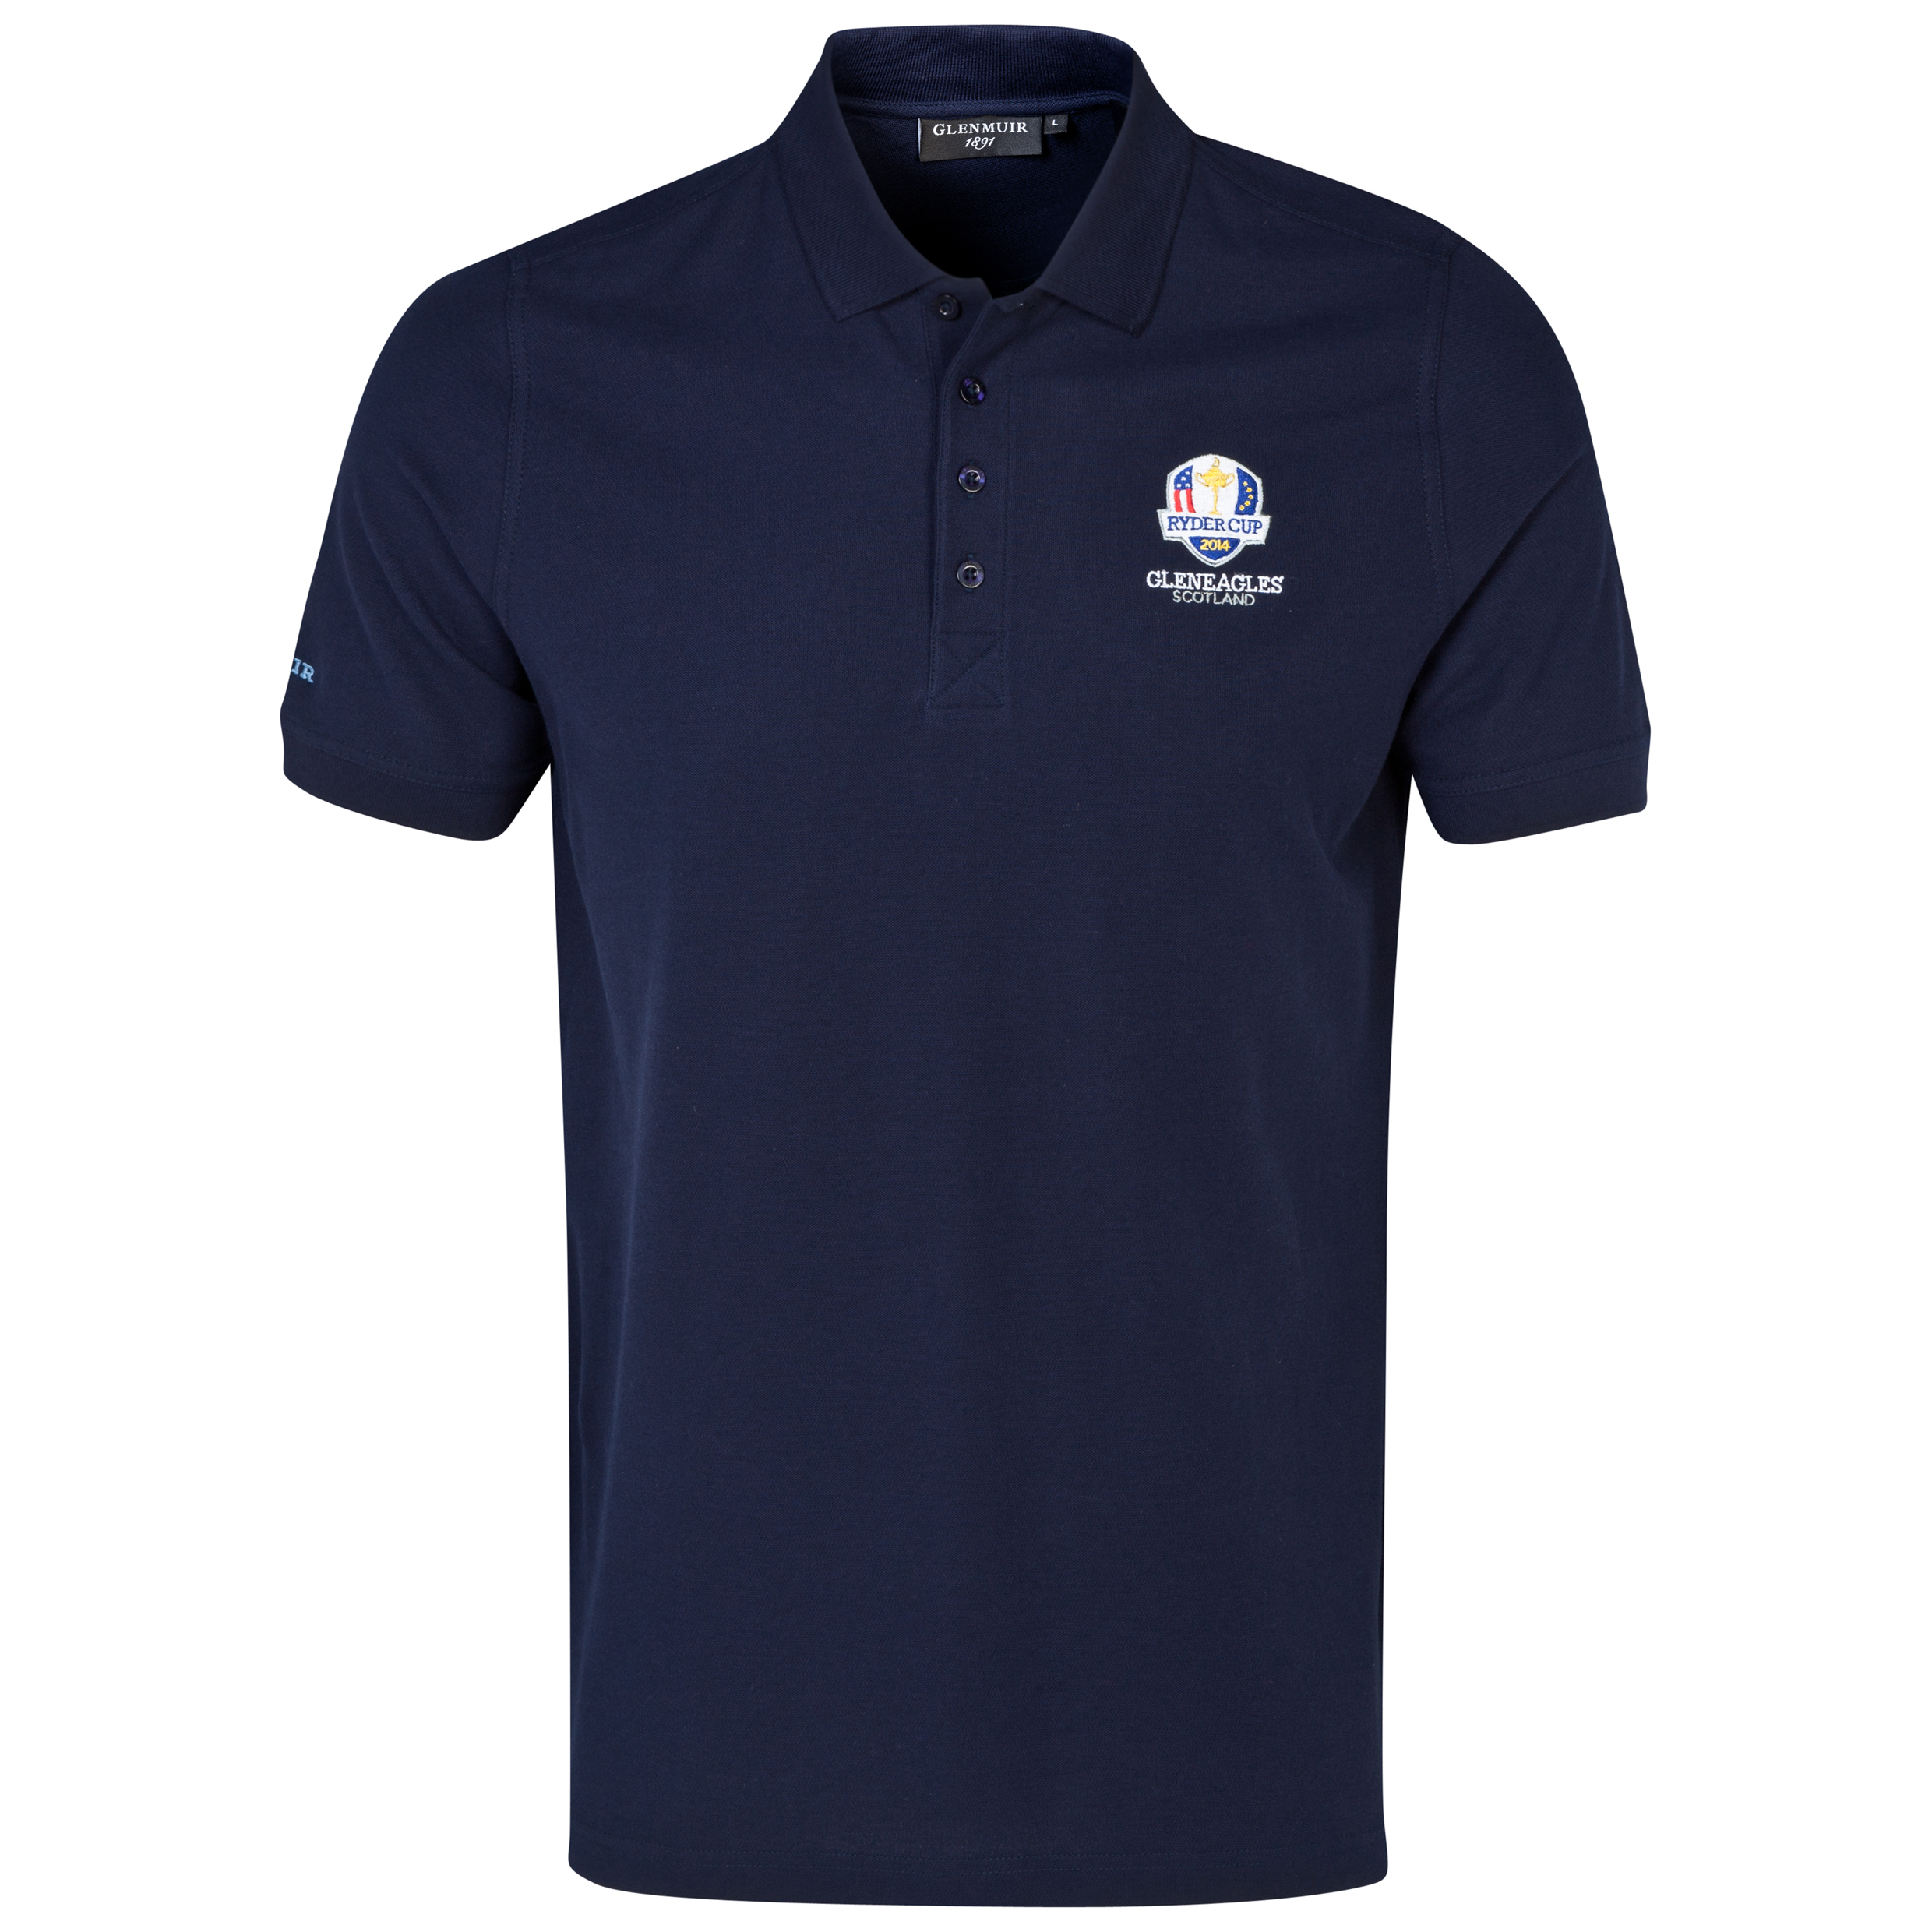 The 2014 Ryder Cup Glenmuir Kinloch Cotton Polo Navy